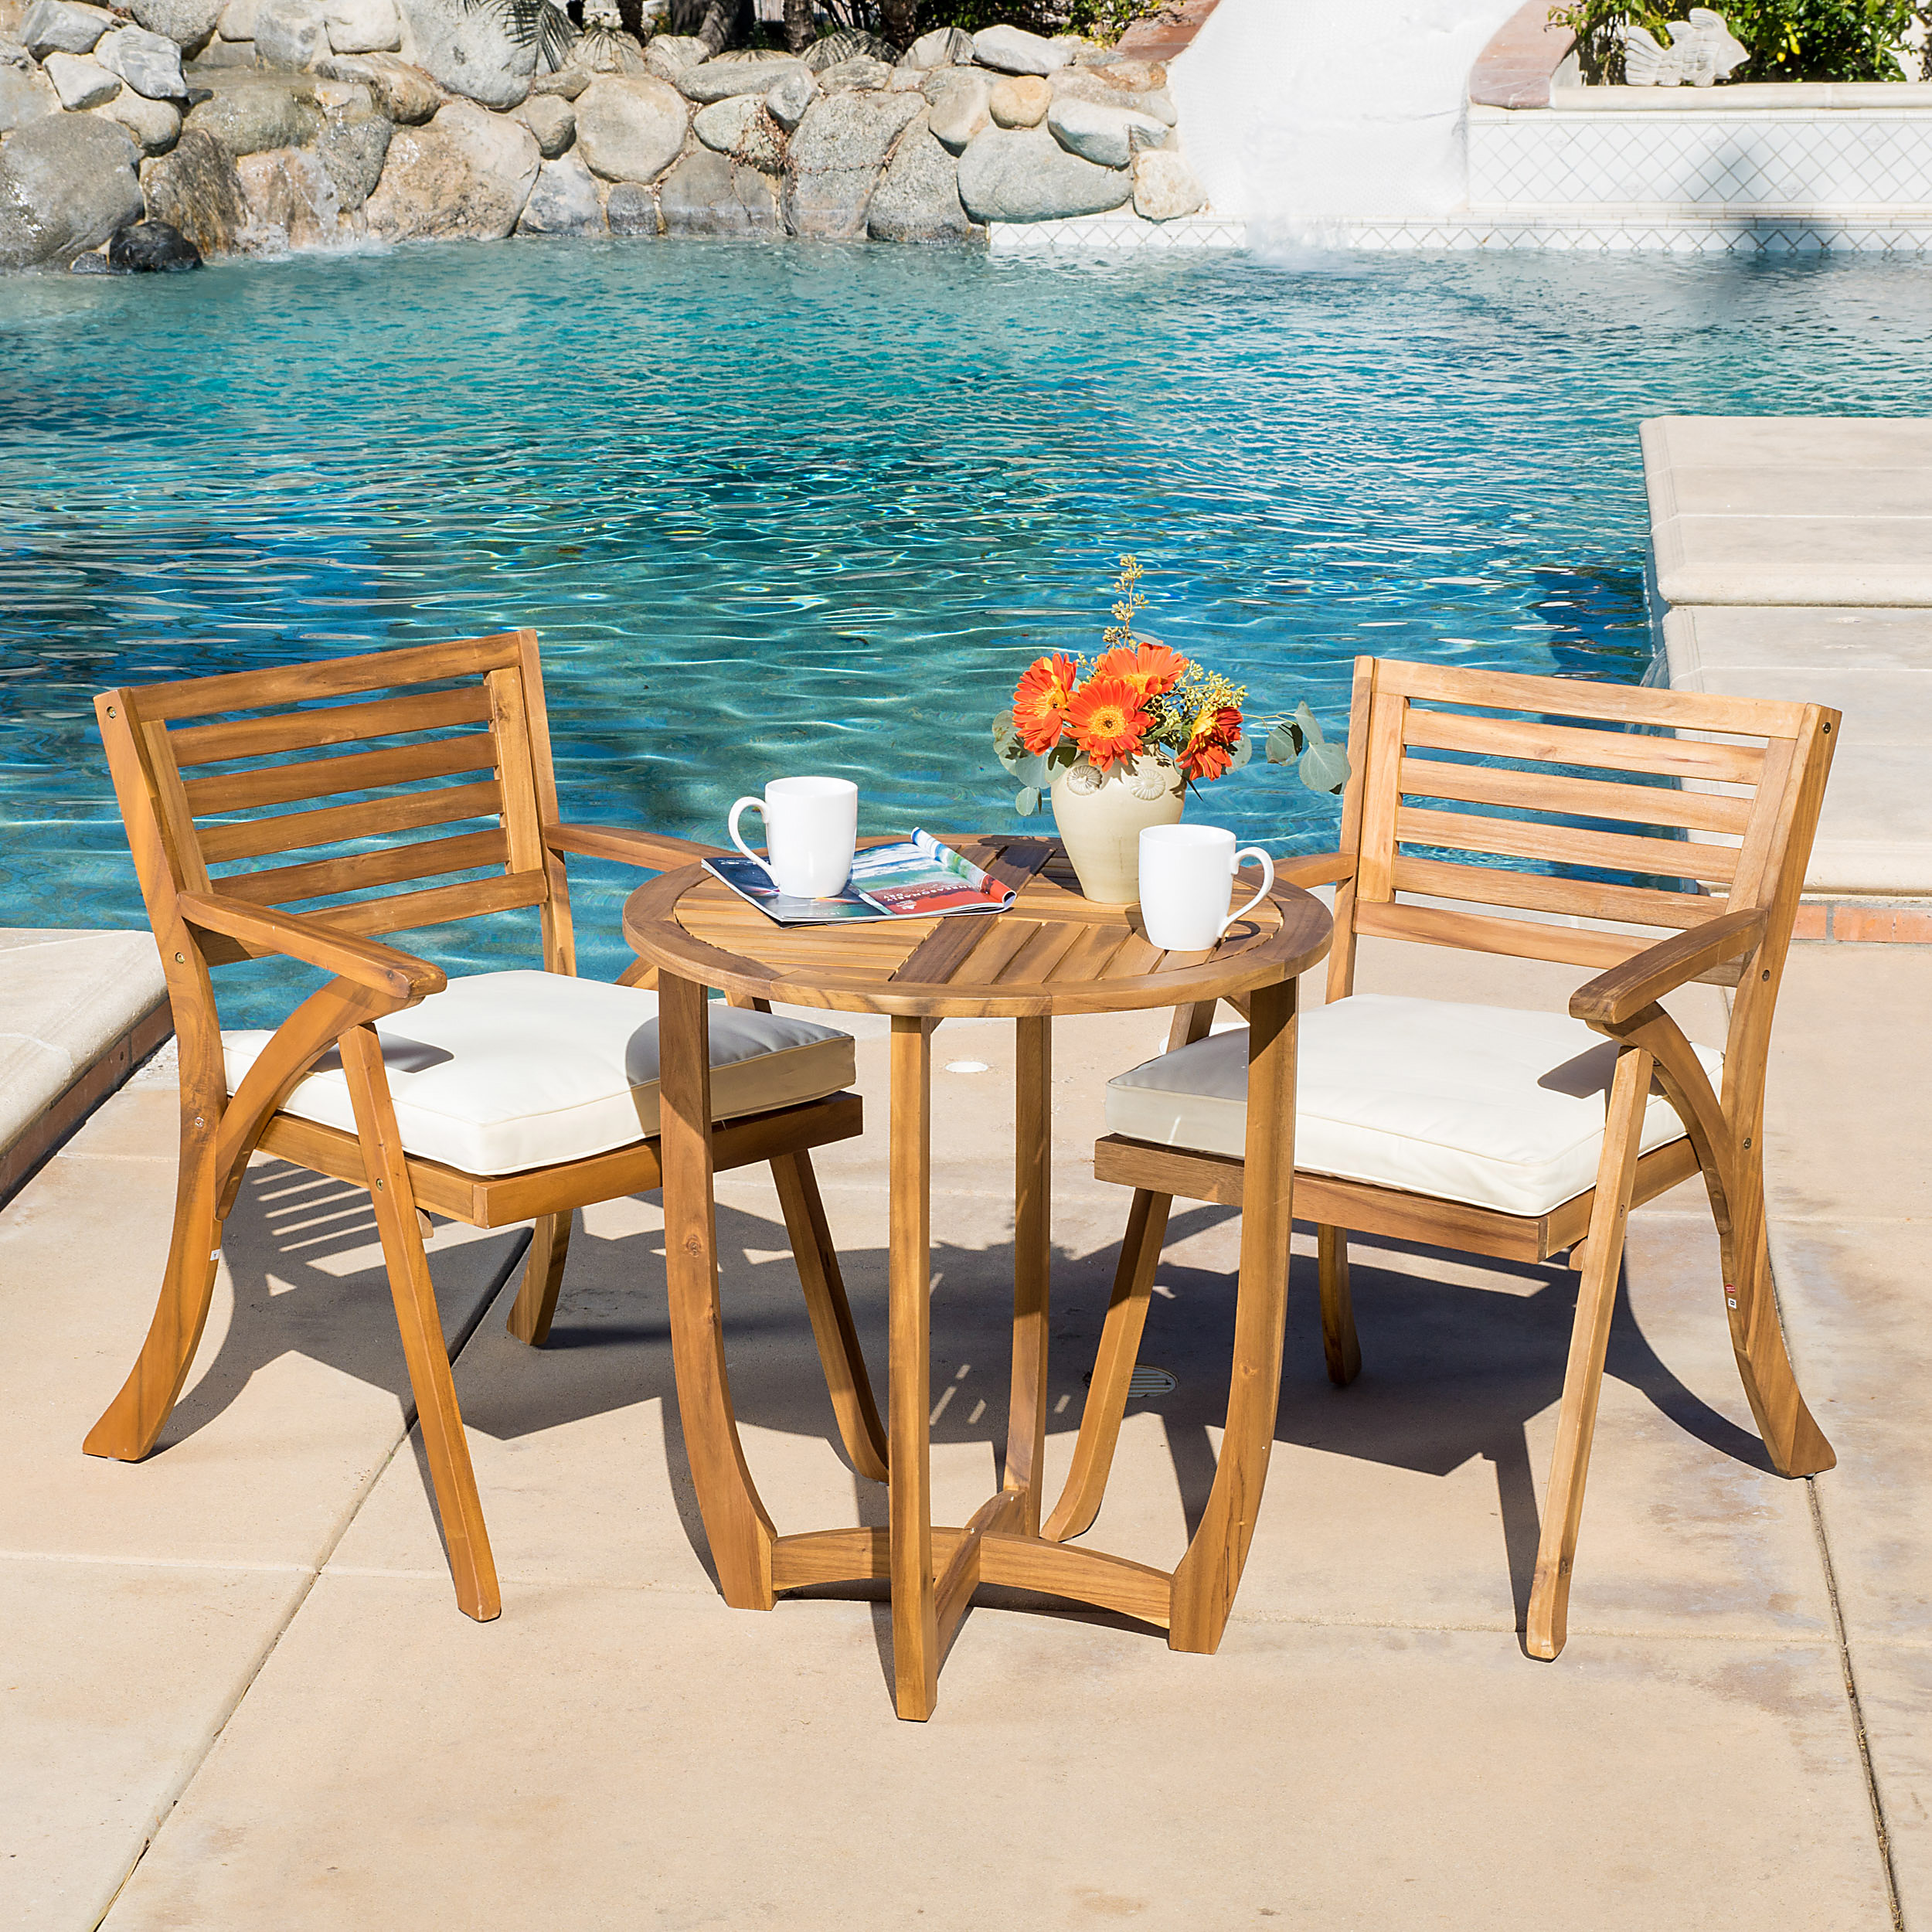 Esme Acacia Wood 3-Piece Outdoor Bistro Set with Cushions, Teak Finish